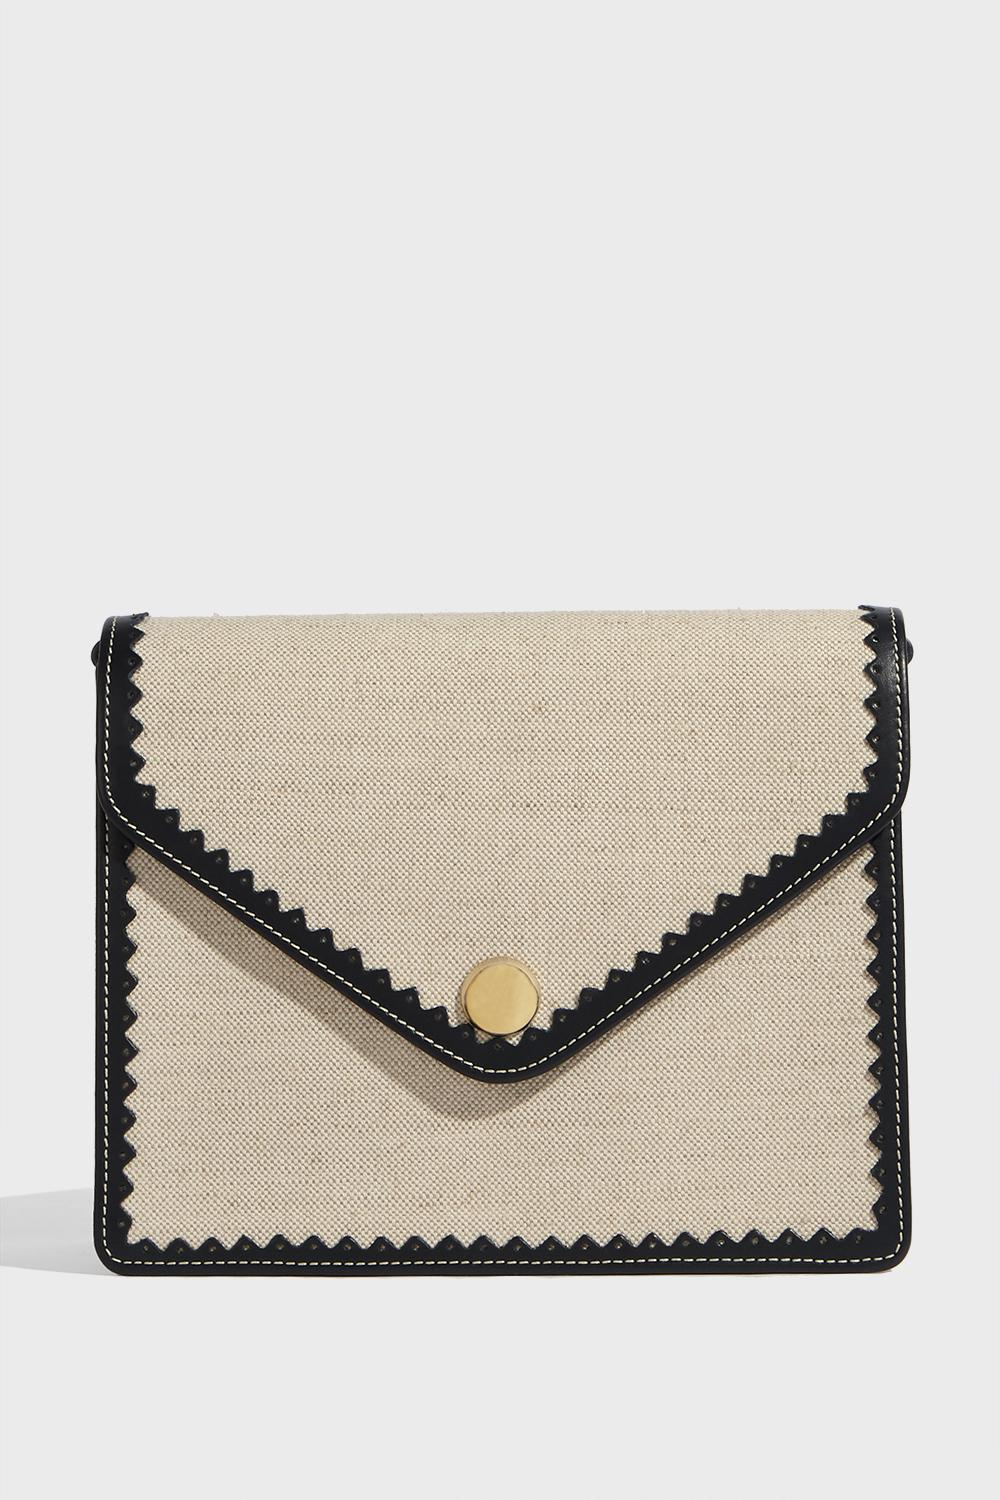 Paul & Joe Octave Mini Flap Canvas And Leather Bag